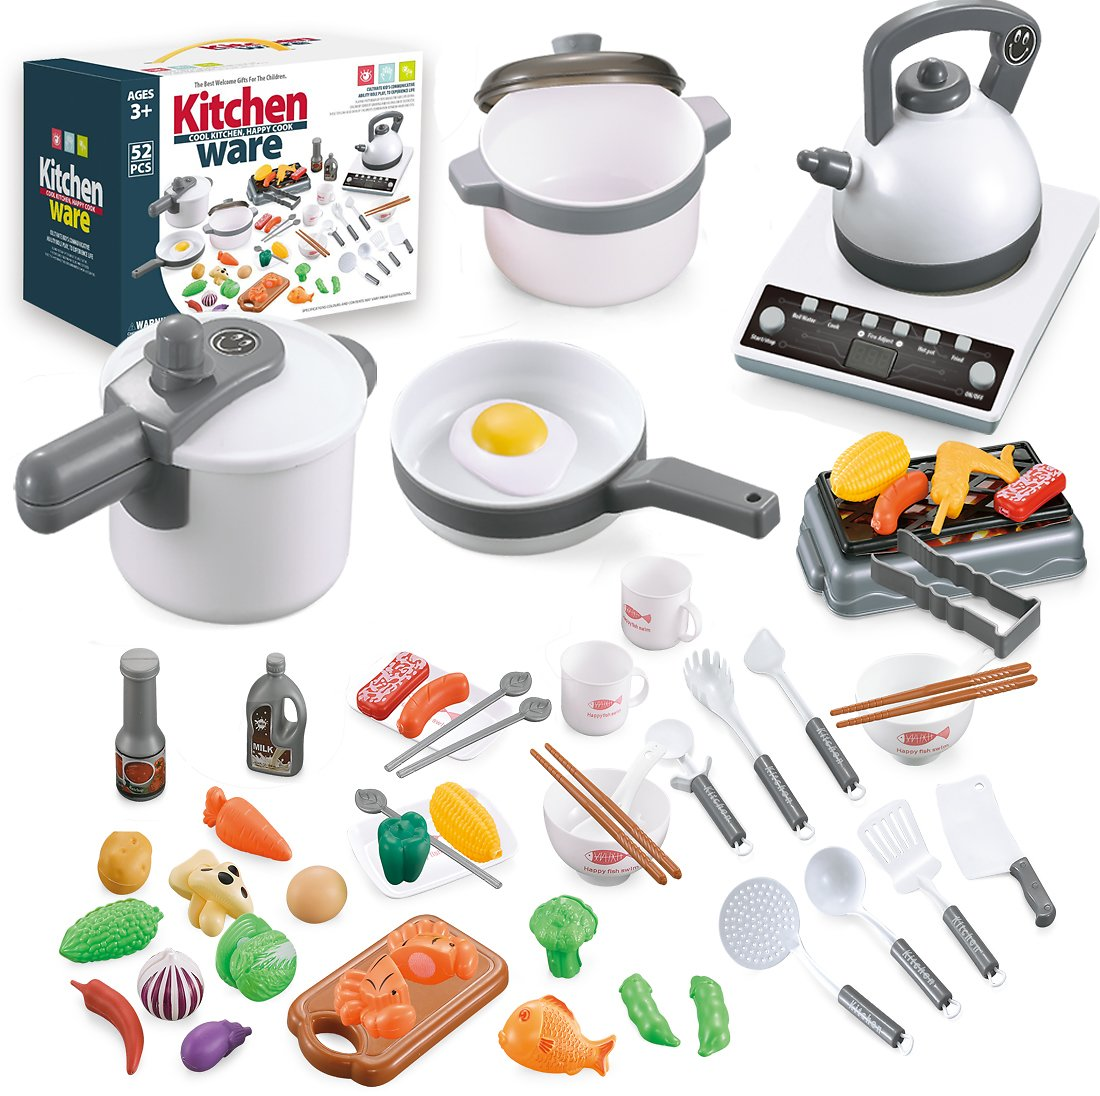 Save 30% On 52 Pieces Toy Kitchen Play Sets for Kids